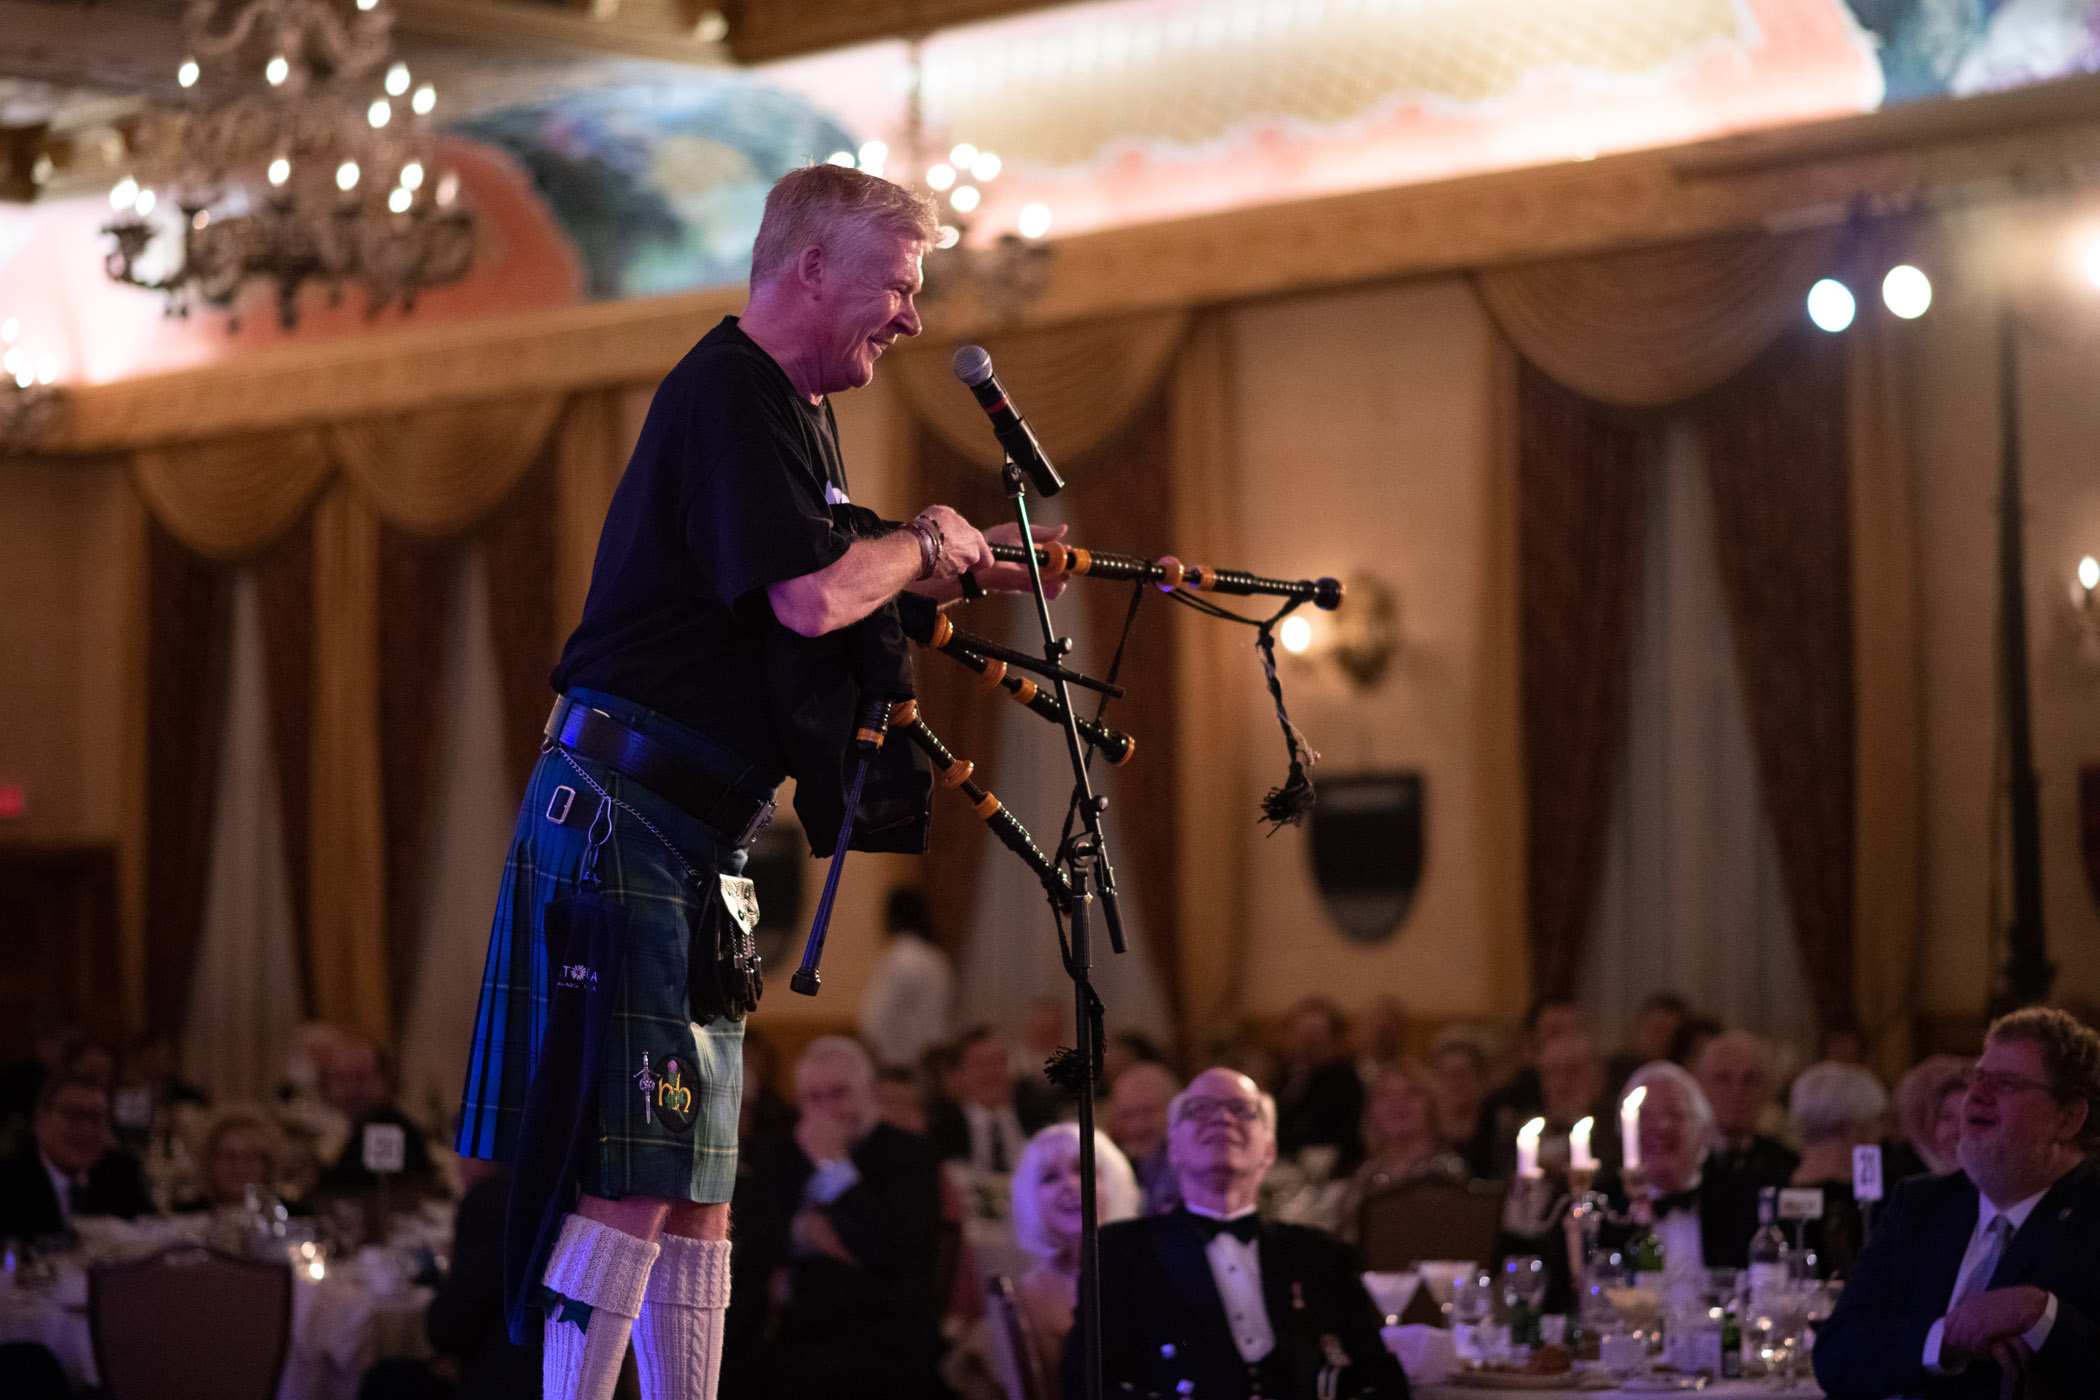 st-andrews-robert-lowdon johnny bagpipes_207.jpg